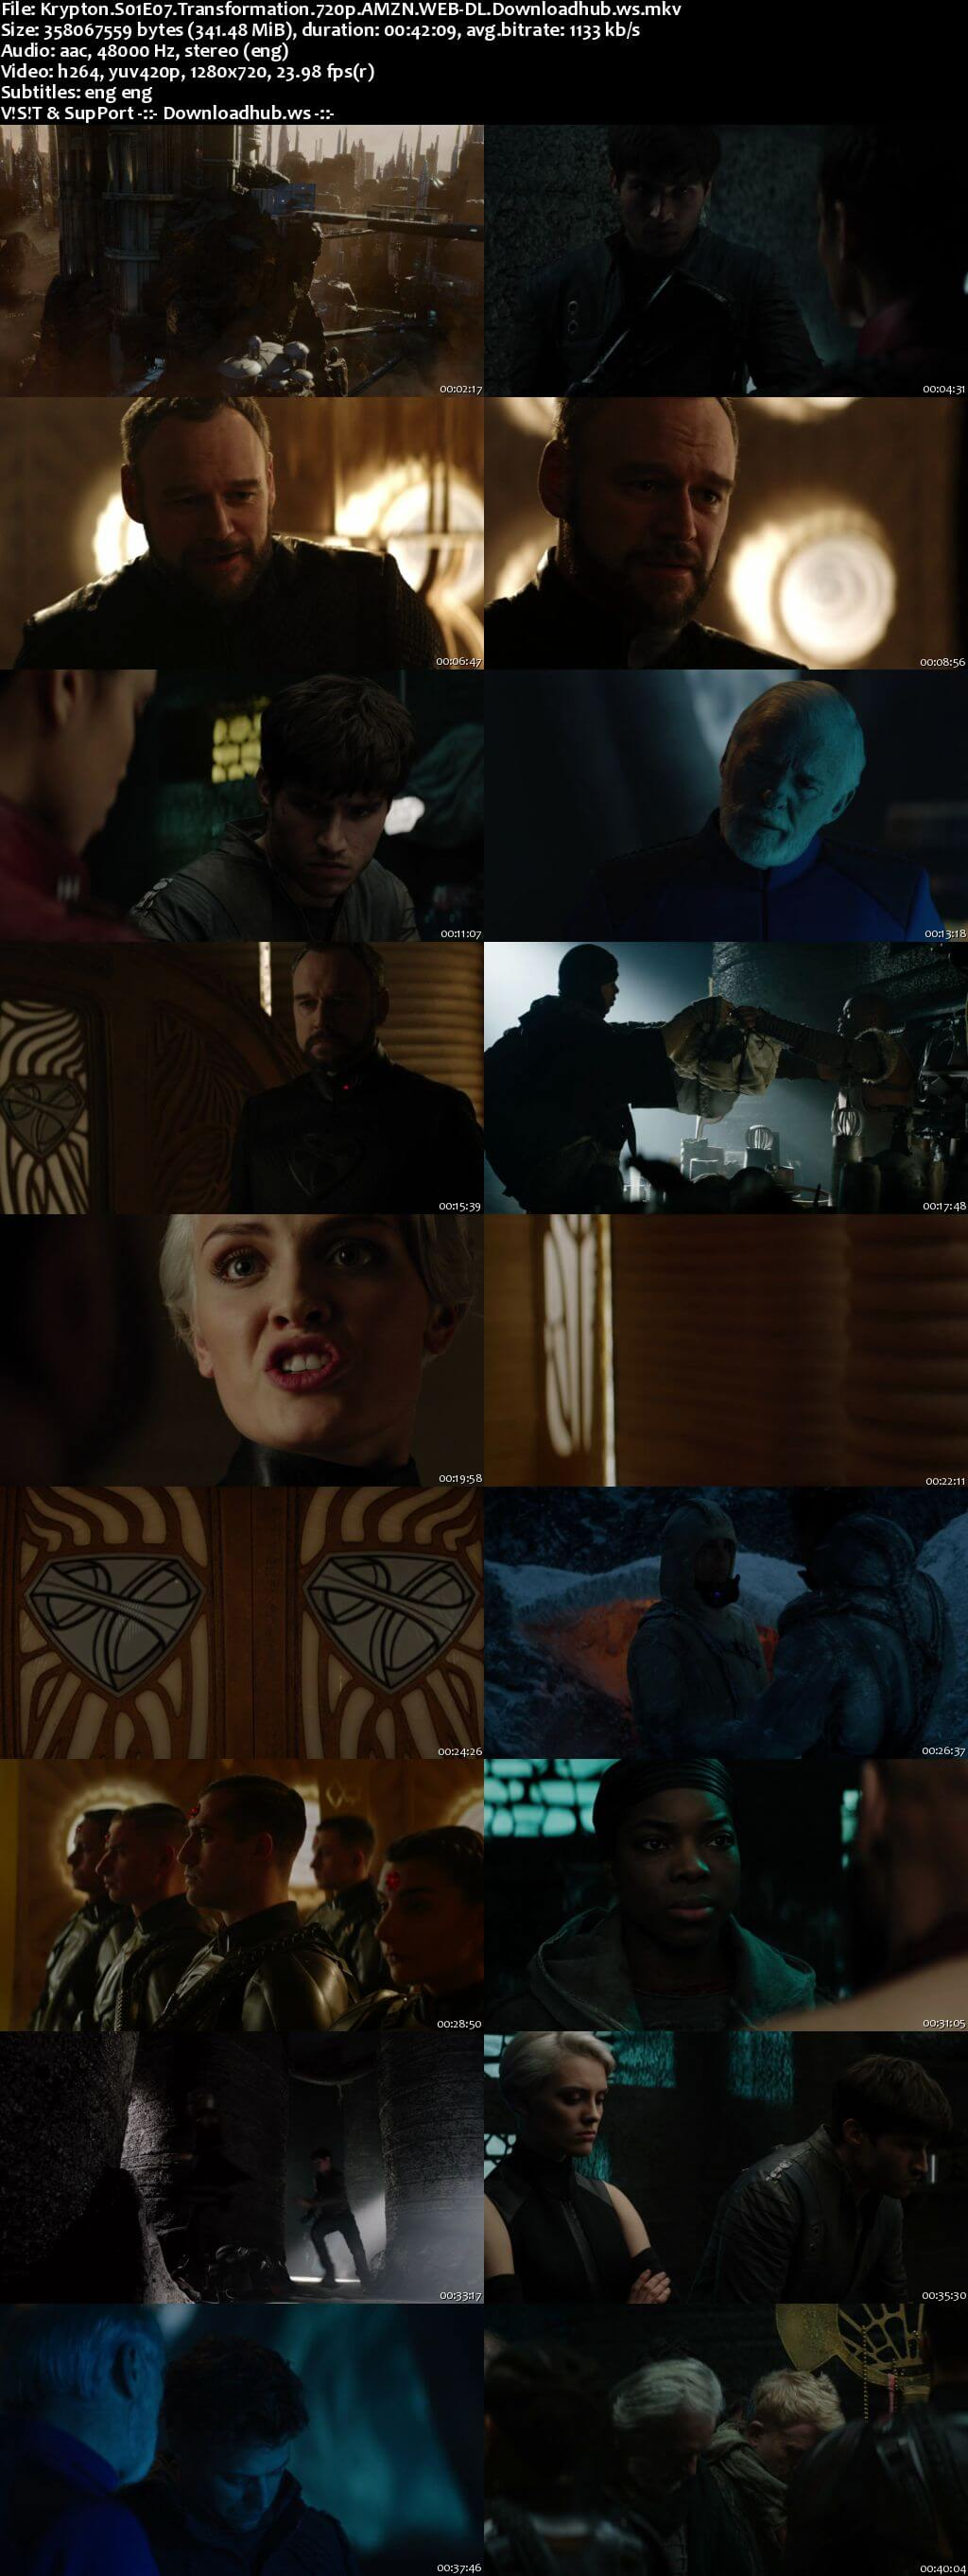 Krypton S01E07 340MB WEB-DL 720p ESubs